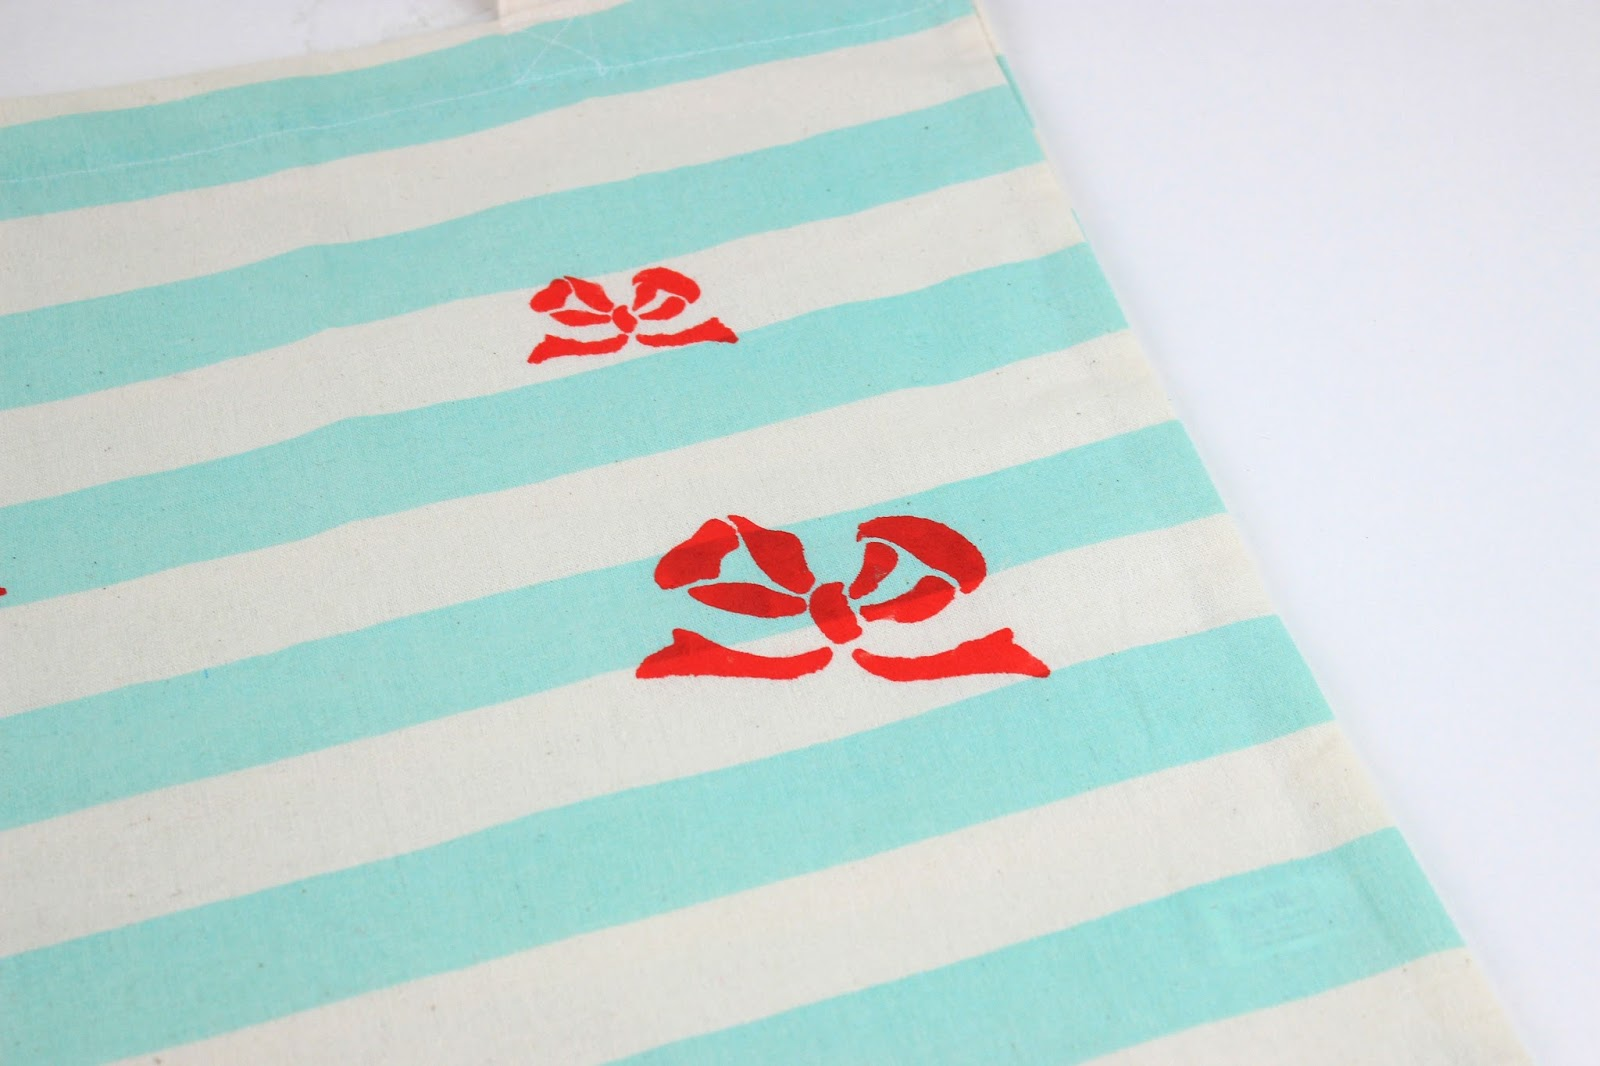 19ca95fa84 Place a cooking paper inside the tote bag